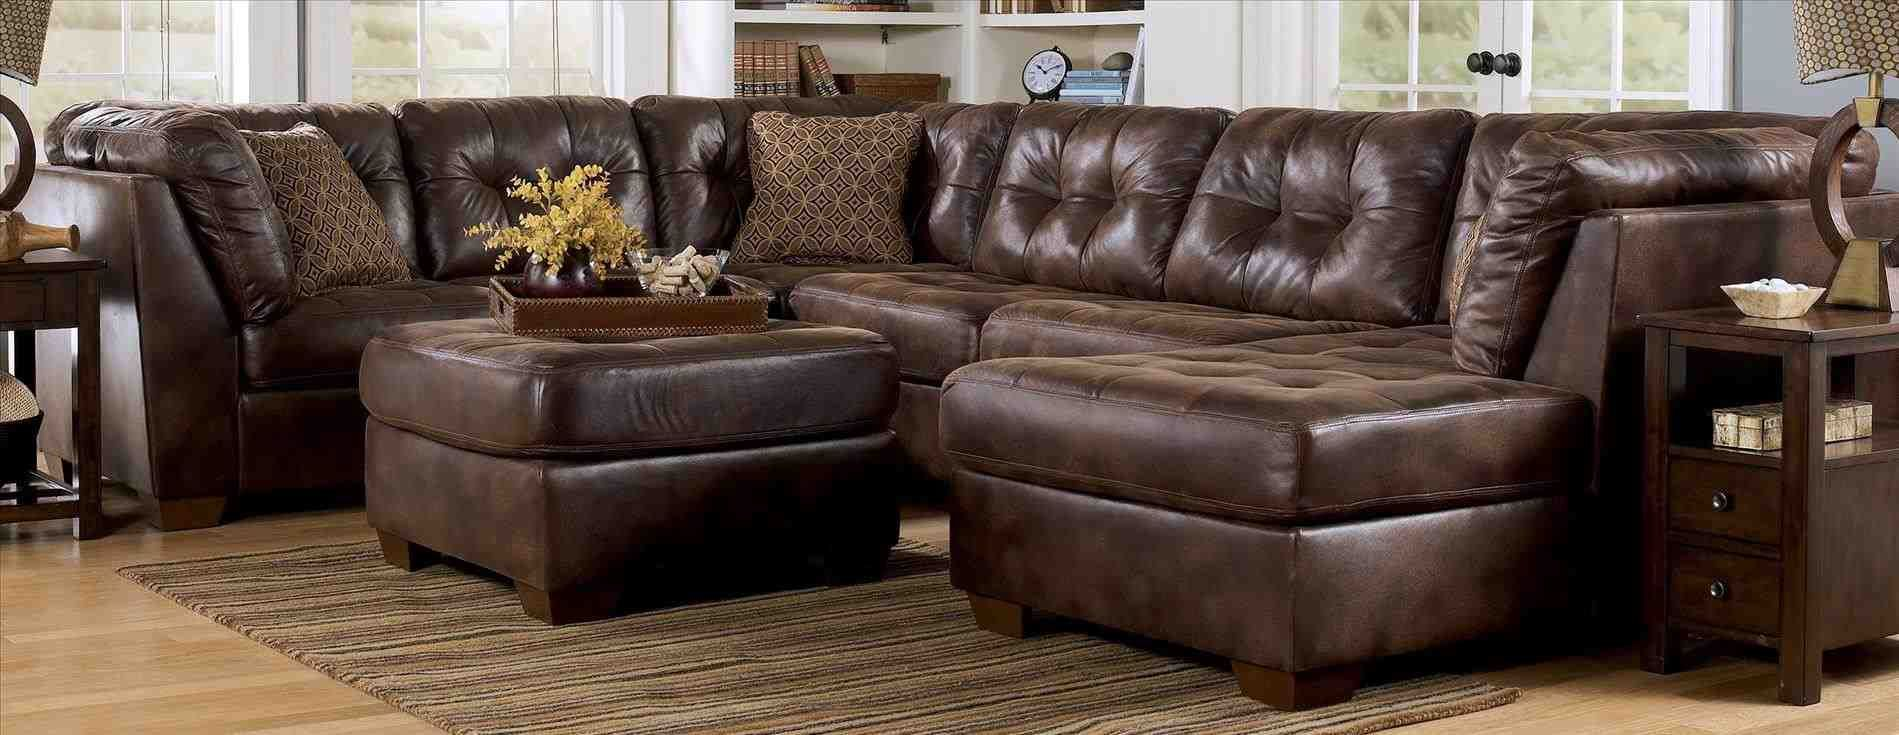 Cheap Sectionals Under 500 Full Size Of Sofa Sectional Couch 7 Piece Living Room Furniture Sets Leather Sectional Brown Sectional Sofa Sectional Sleeper Sofa